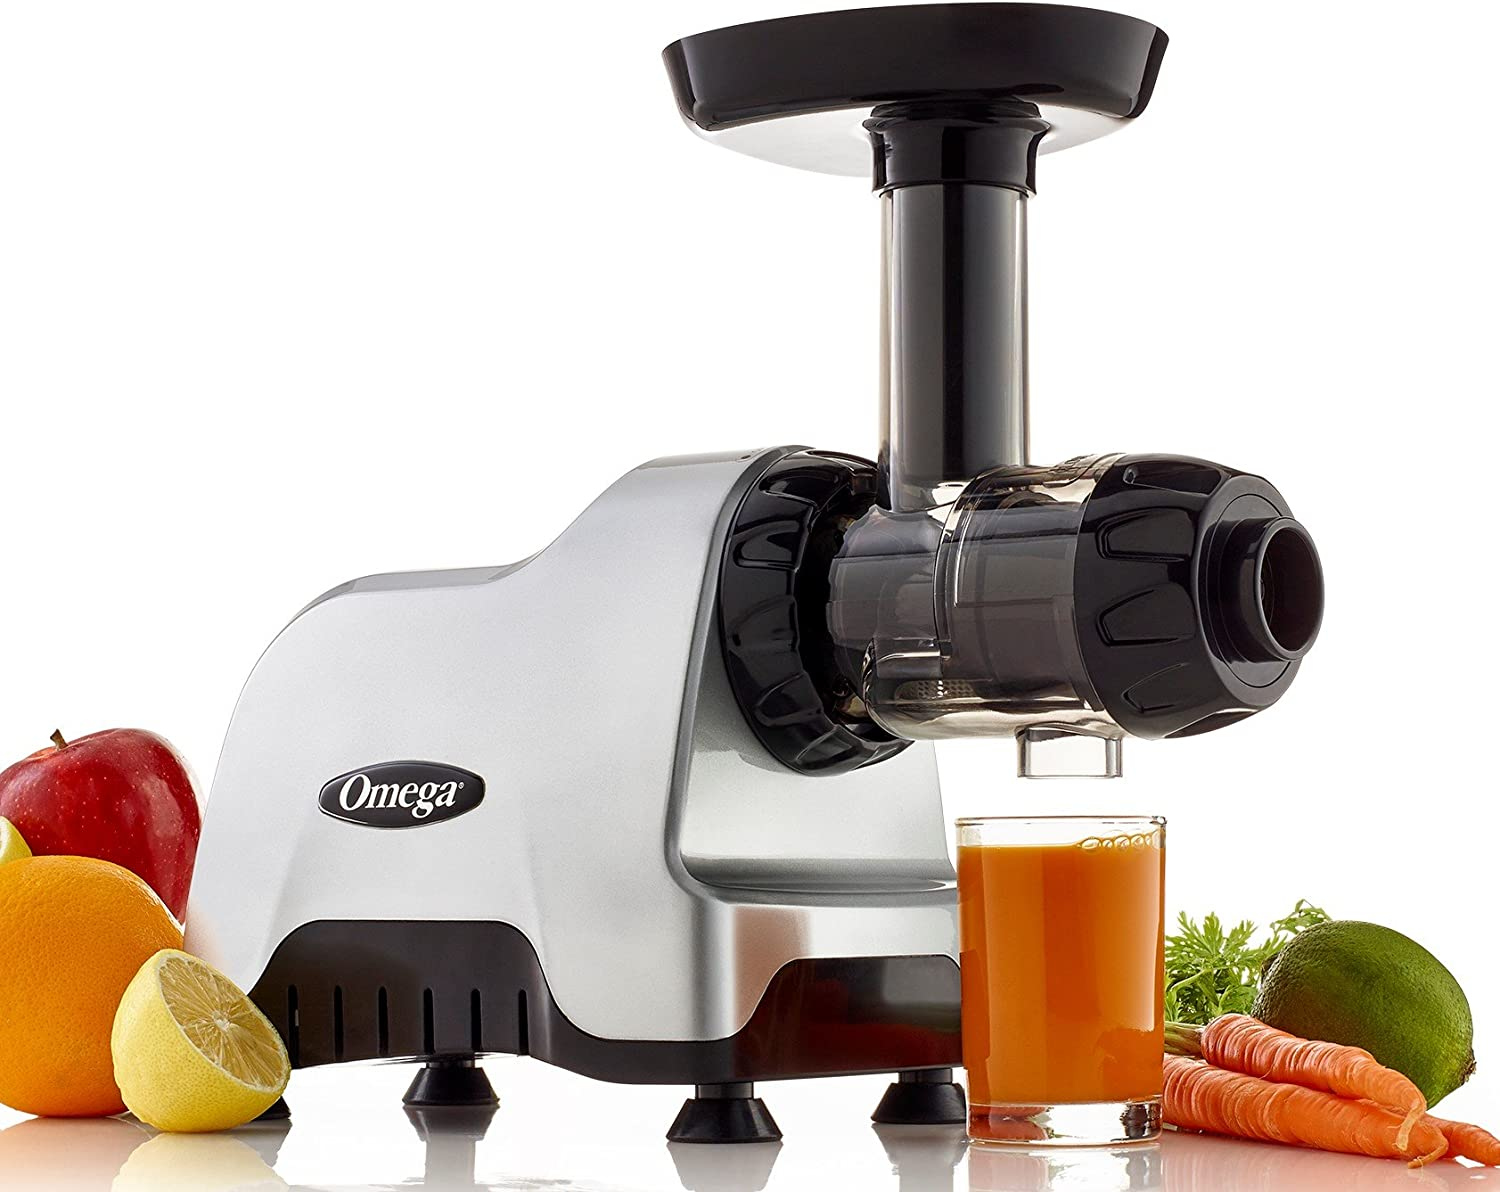 Omega Compact Slow Speed Multi-Purpose Nutrition System Juicer with Quiet Motor Creates Continuous Fresh Healthy Fruit and Vegetable Juice at 80 RPM, 200-Watt, Silver